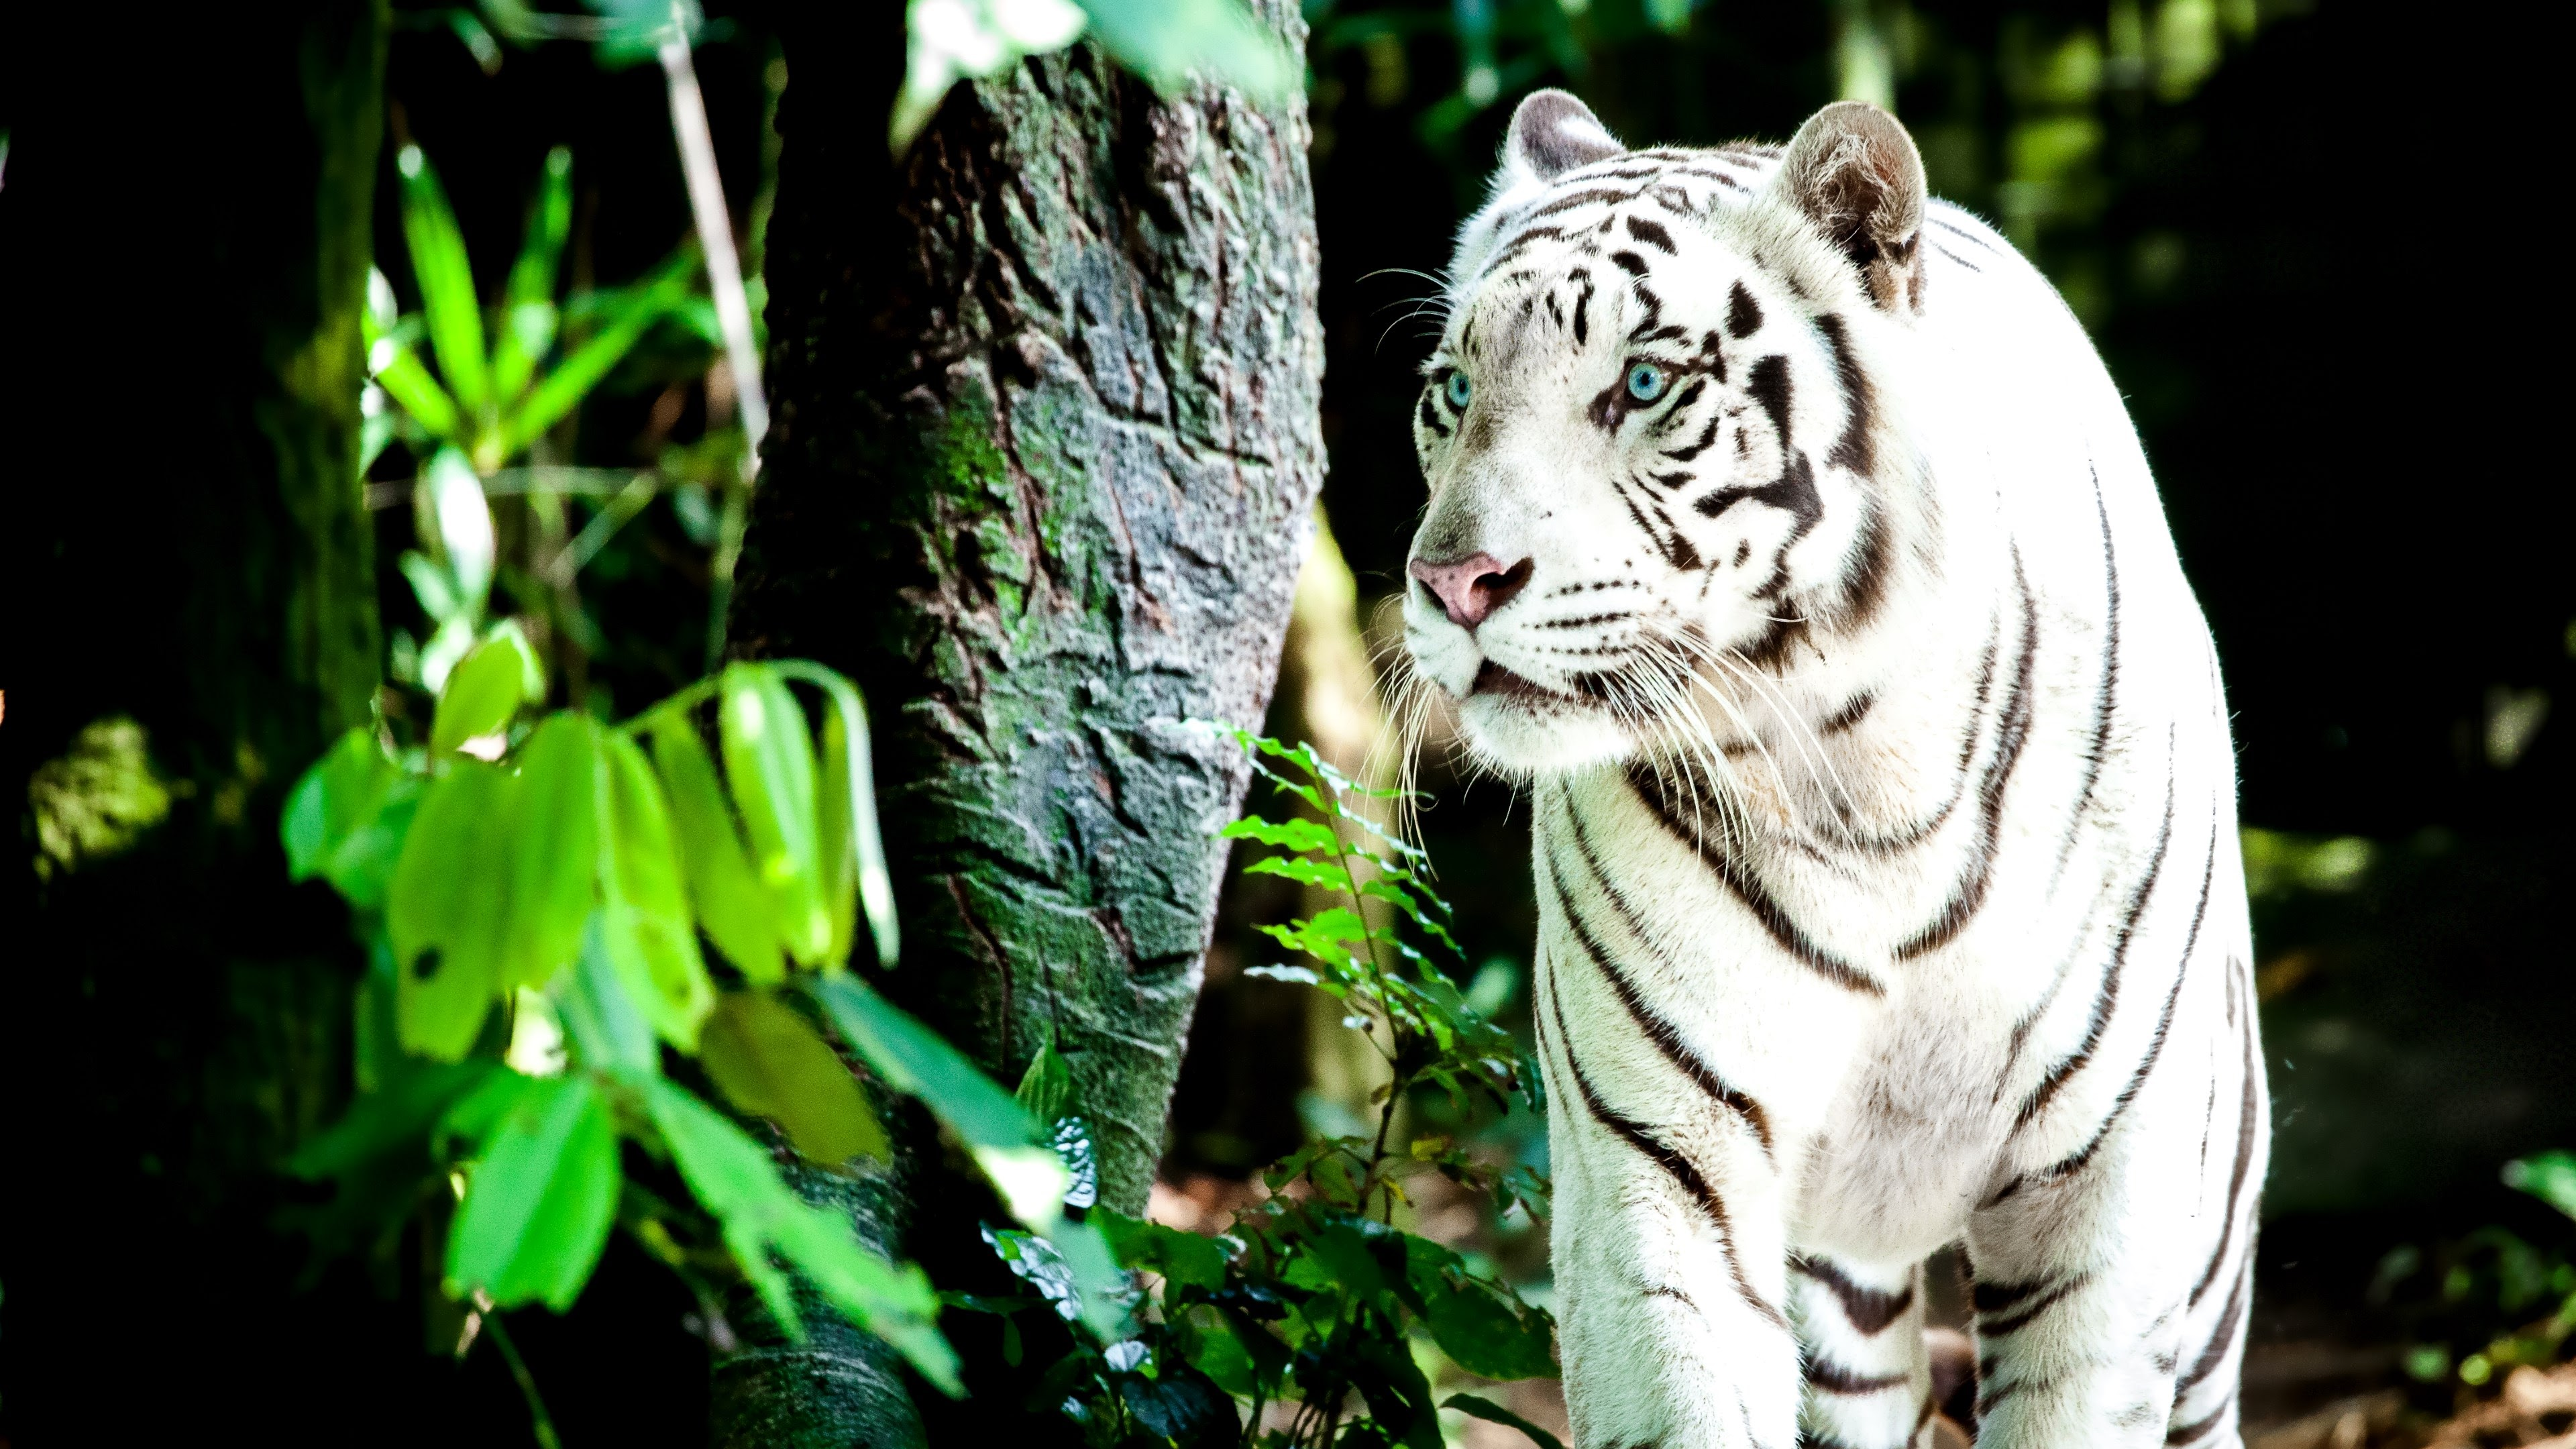 ultra high definition wallpapers tigers - photo #21